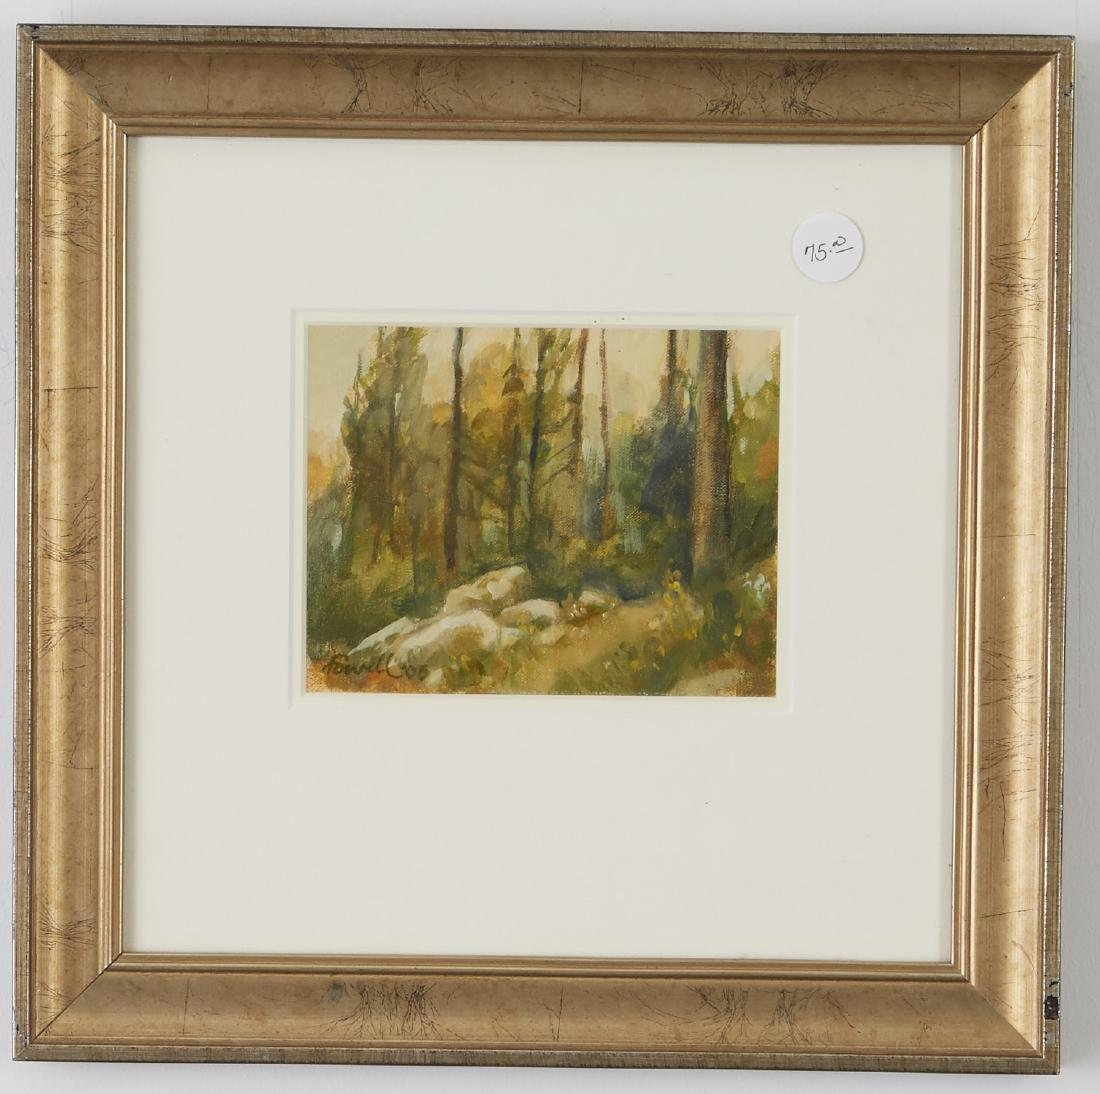 4 Landscsape Paintings Somers, Lowell, and Moen - 4